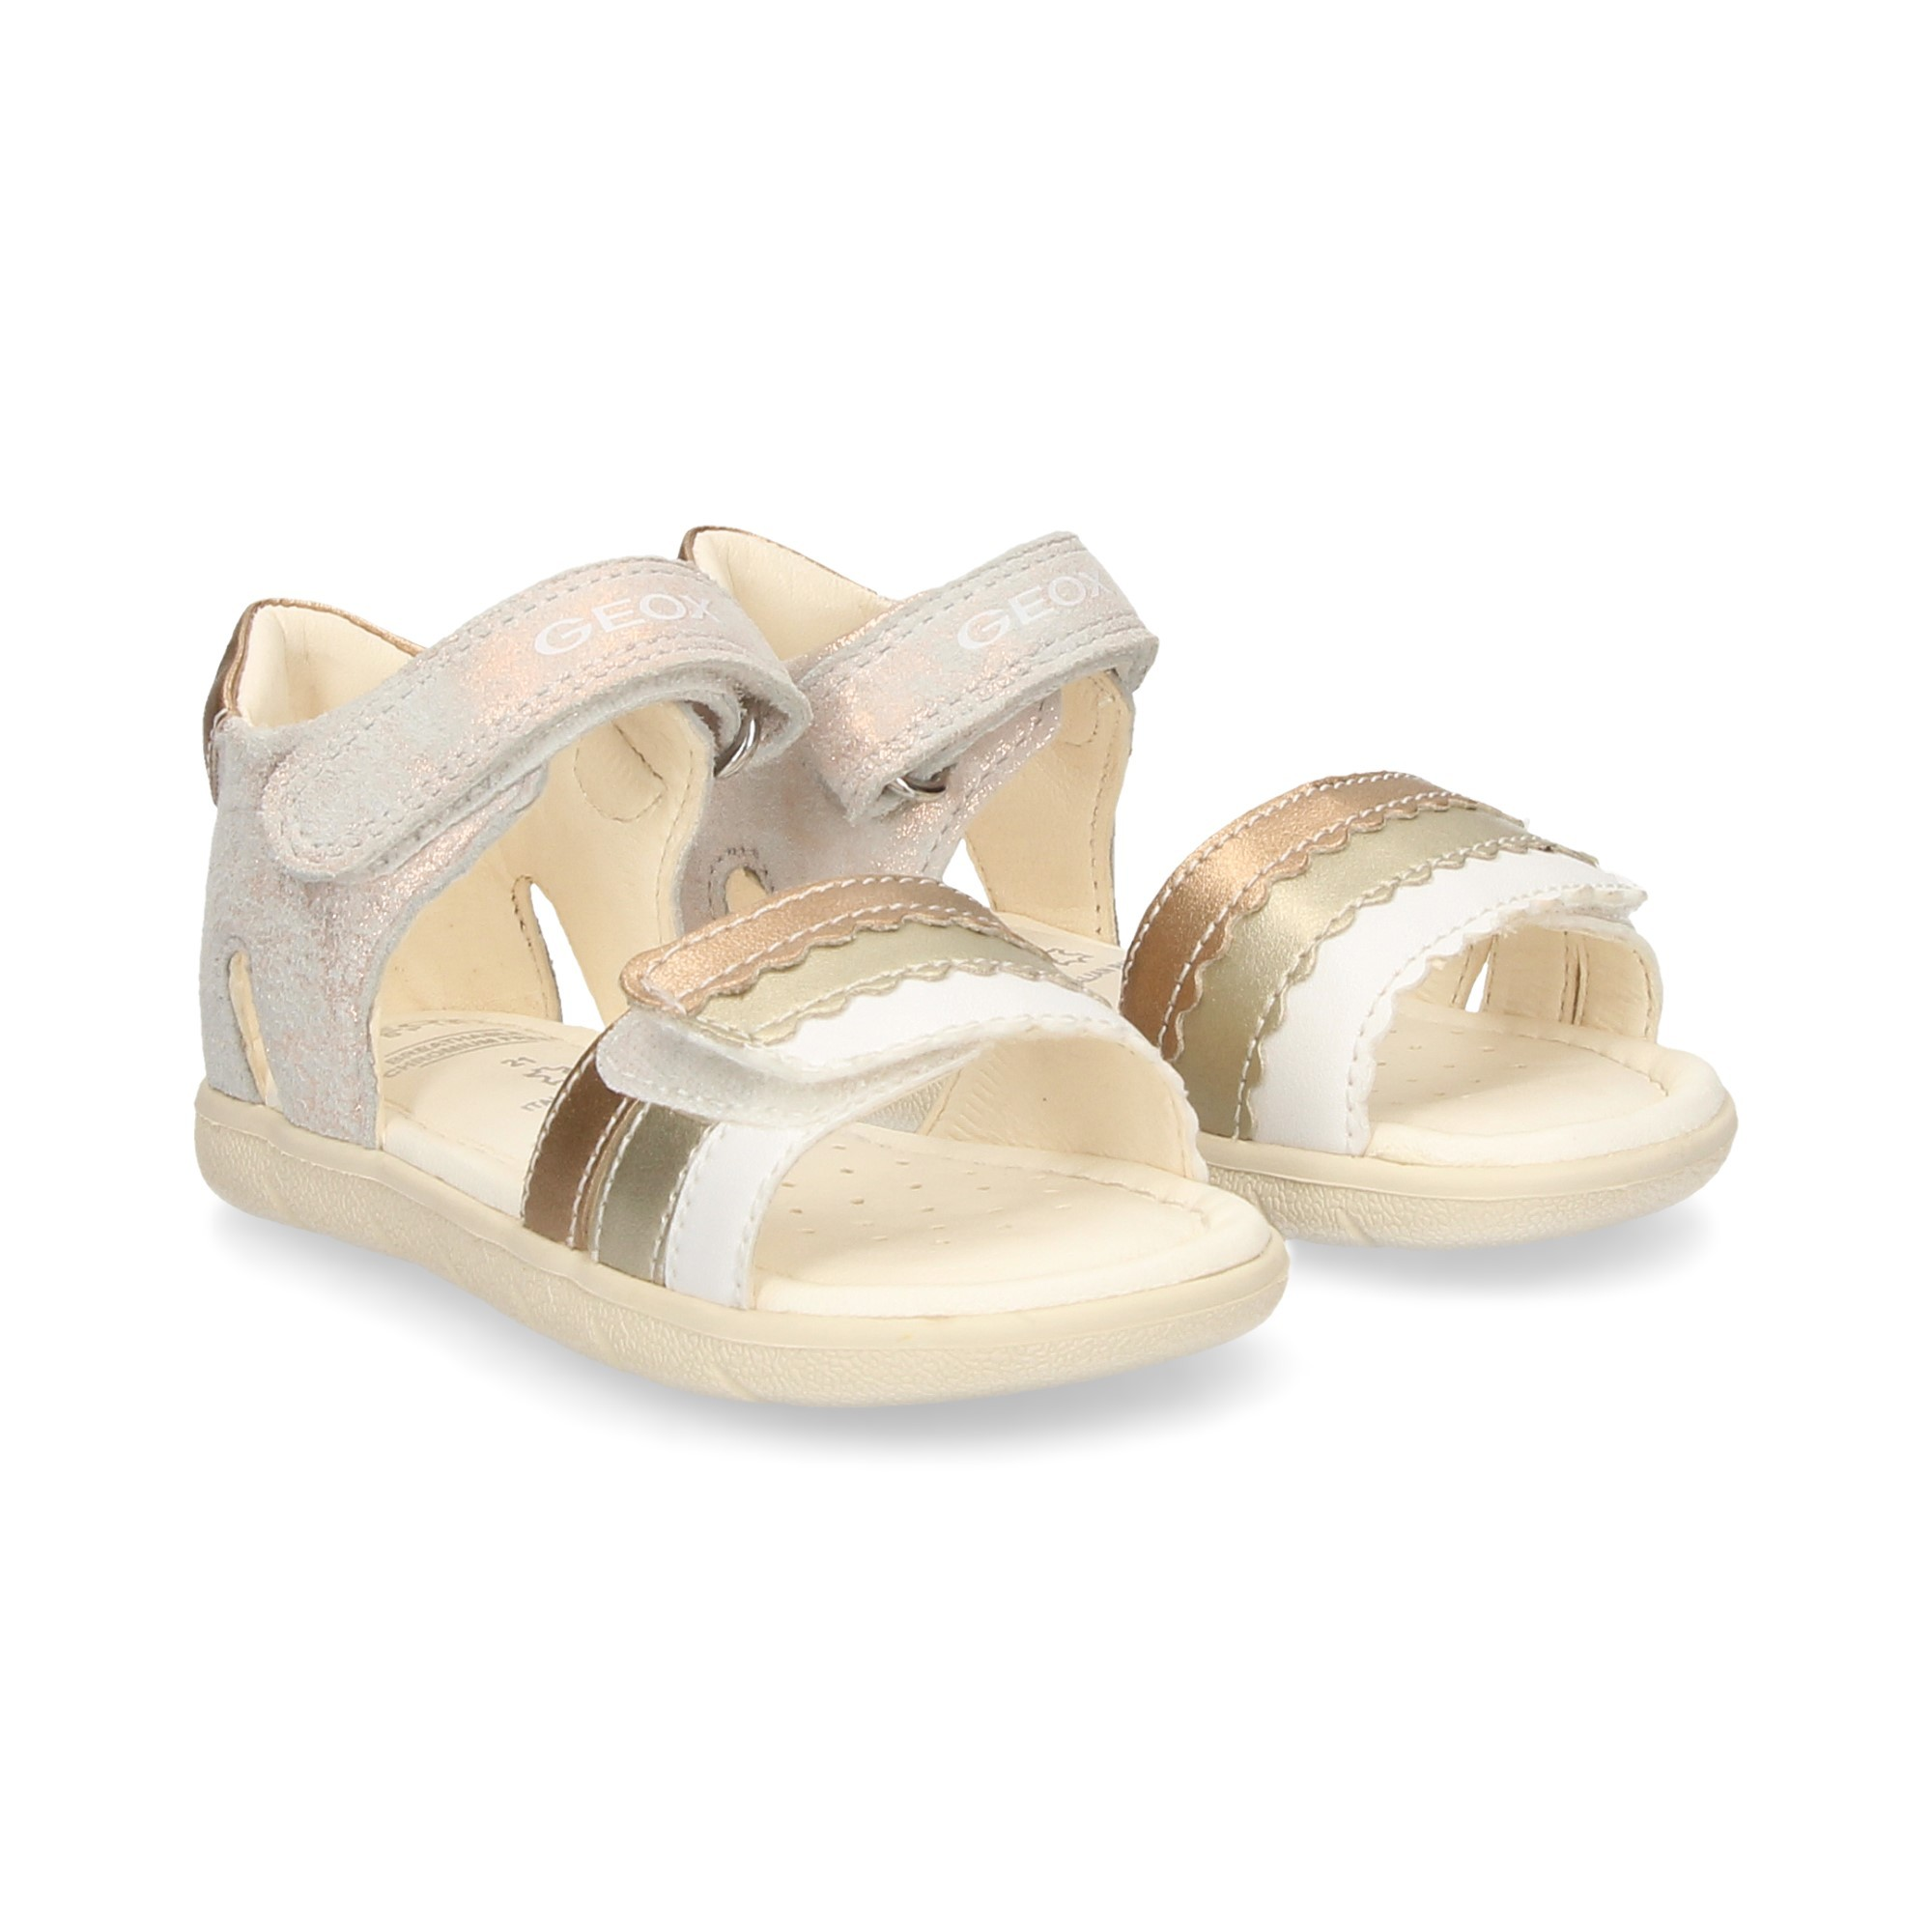 GEOX Girls sandals and flip flops B921YB C7018 ORO